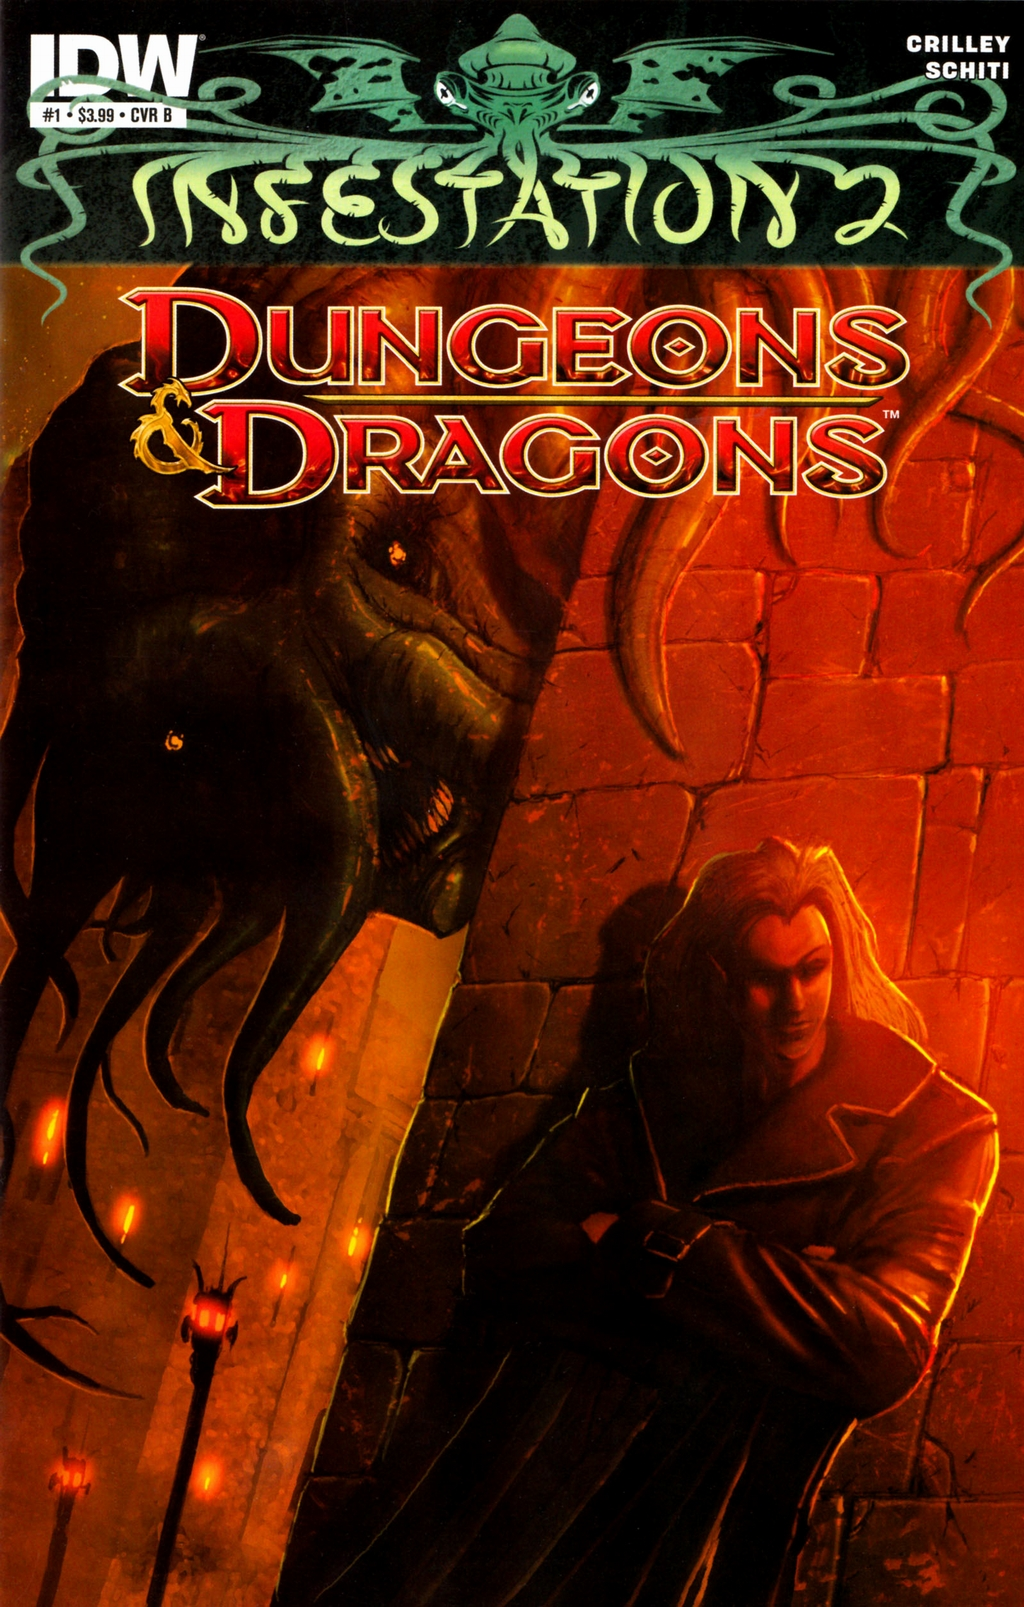 Read online Infestation 2: Dungeons & Dragons comic -  Issue #1 - 2